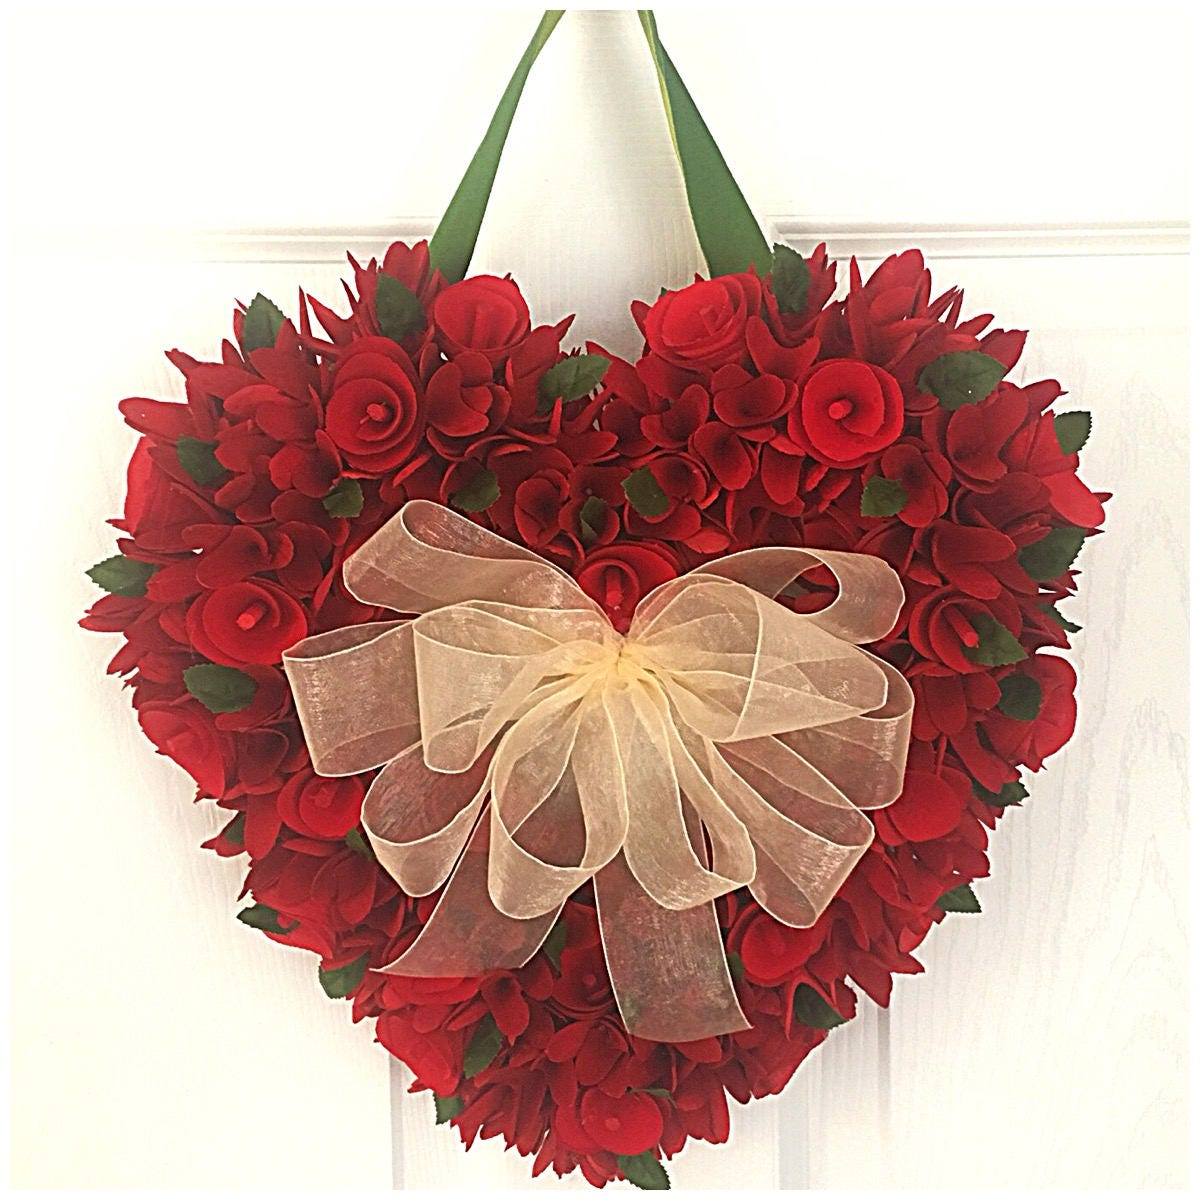 gallery photo gallery photo gallery photo gallery photo ...  sc 1 st  Carole with an E Crafts & Red Heart. Door Heart Wreath. Wood Curl Wreath. Natural Roses Wreath ...